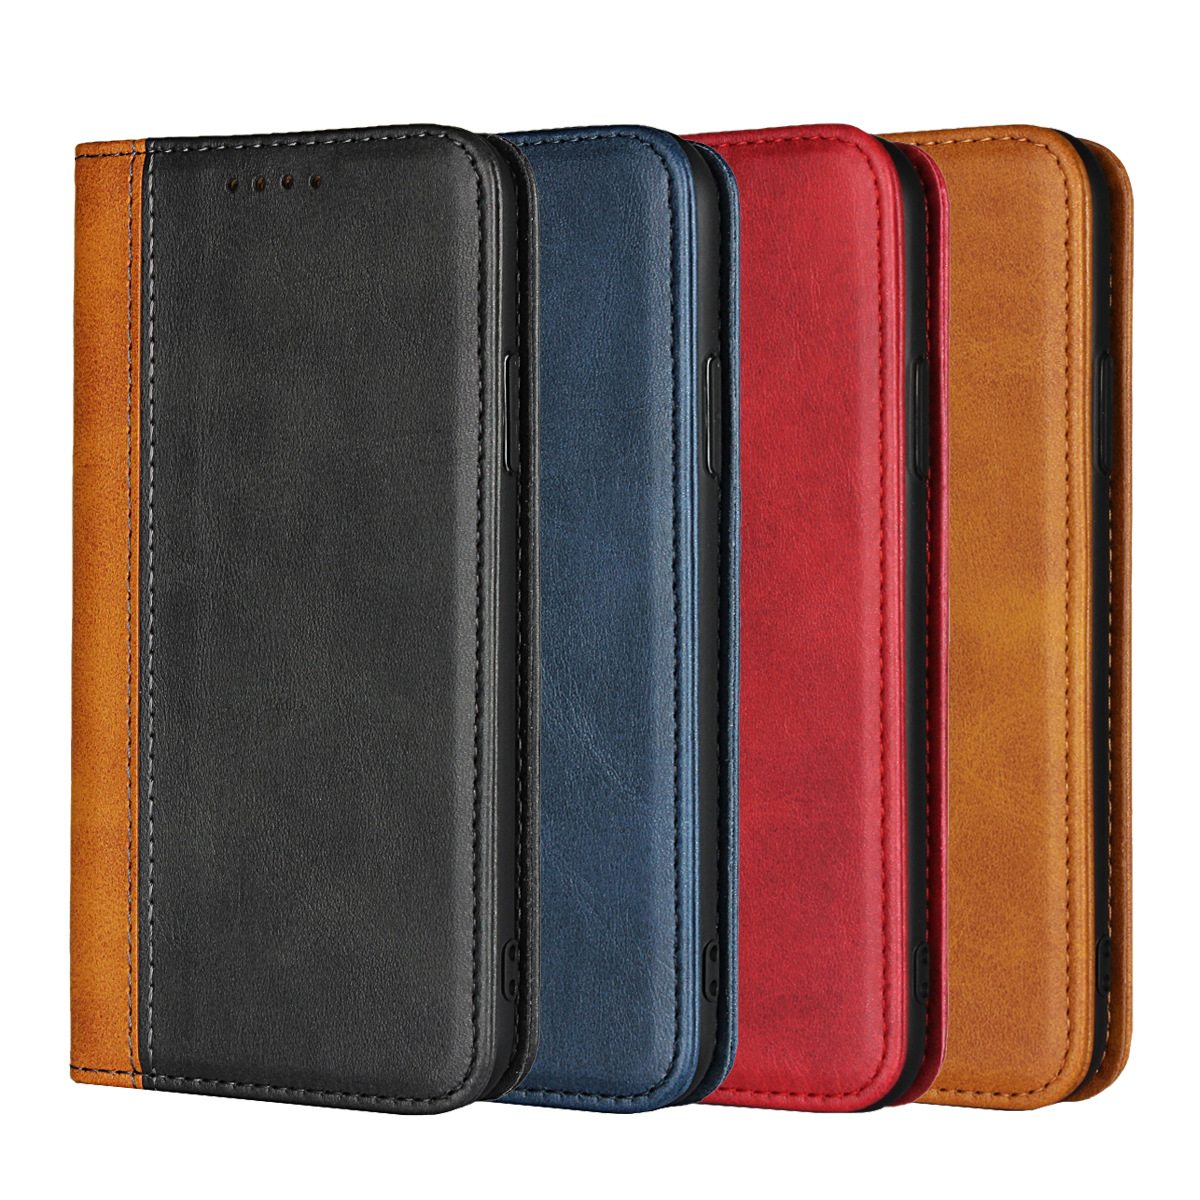 Luxury Flip Calfskin Genuine Leather Case For IPhone 7 8 6S Plus Retro Magnetic Wallet Card Holder Cover For IPhone X XS Max XR